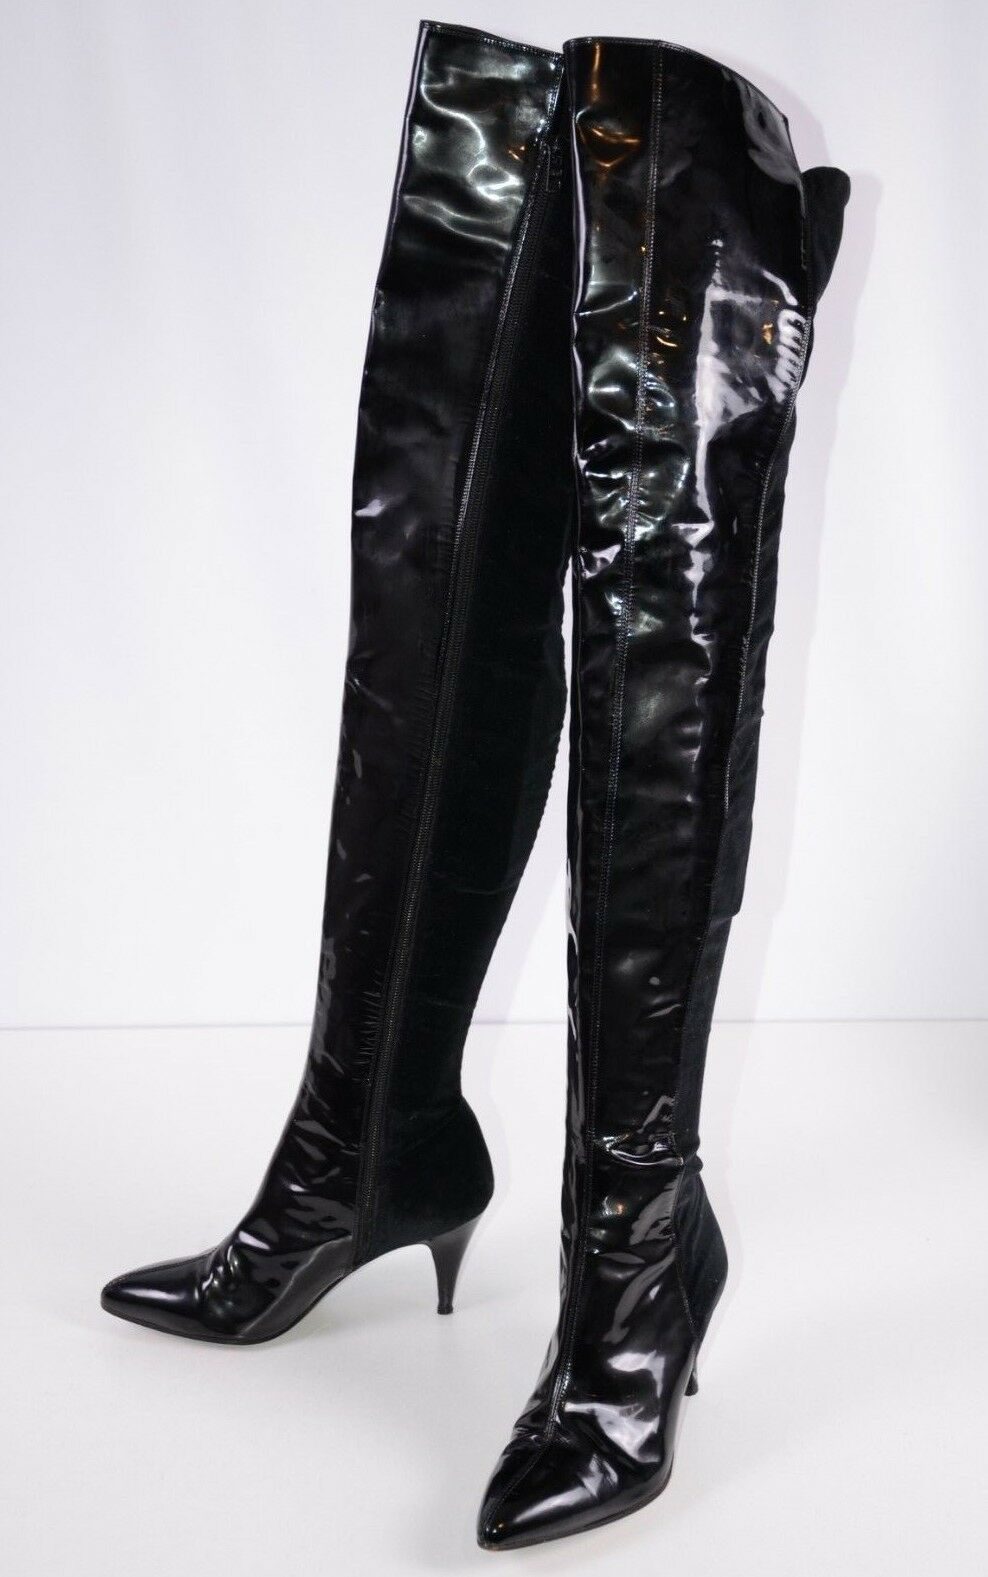 Gianni Versace damen Over Thigh High Stiefel 36.5  Side Zip Lacquerot 6.5 US